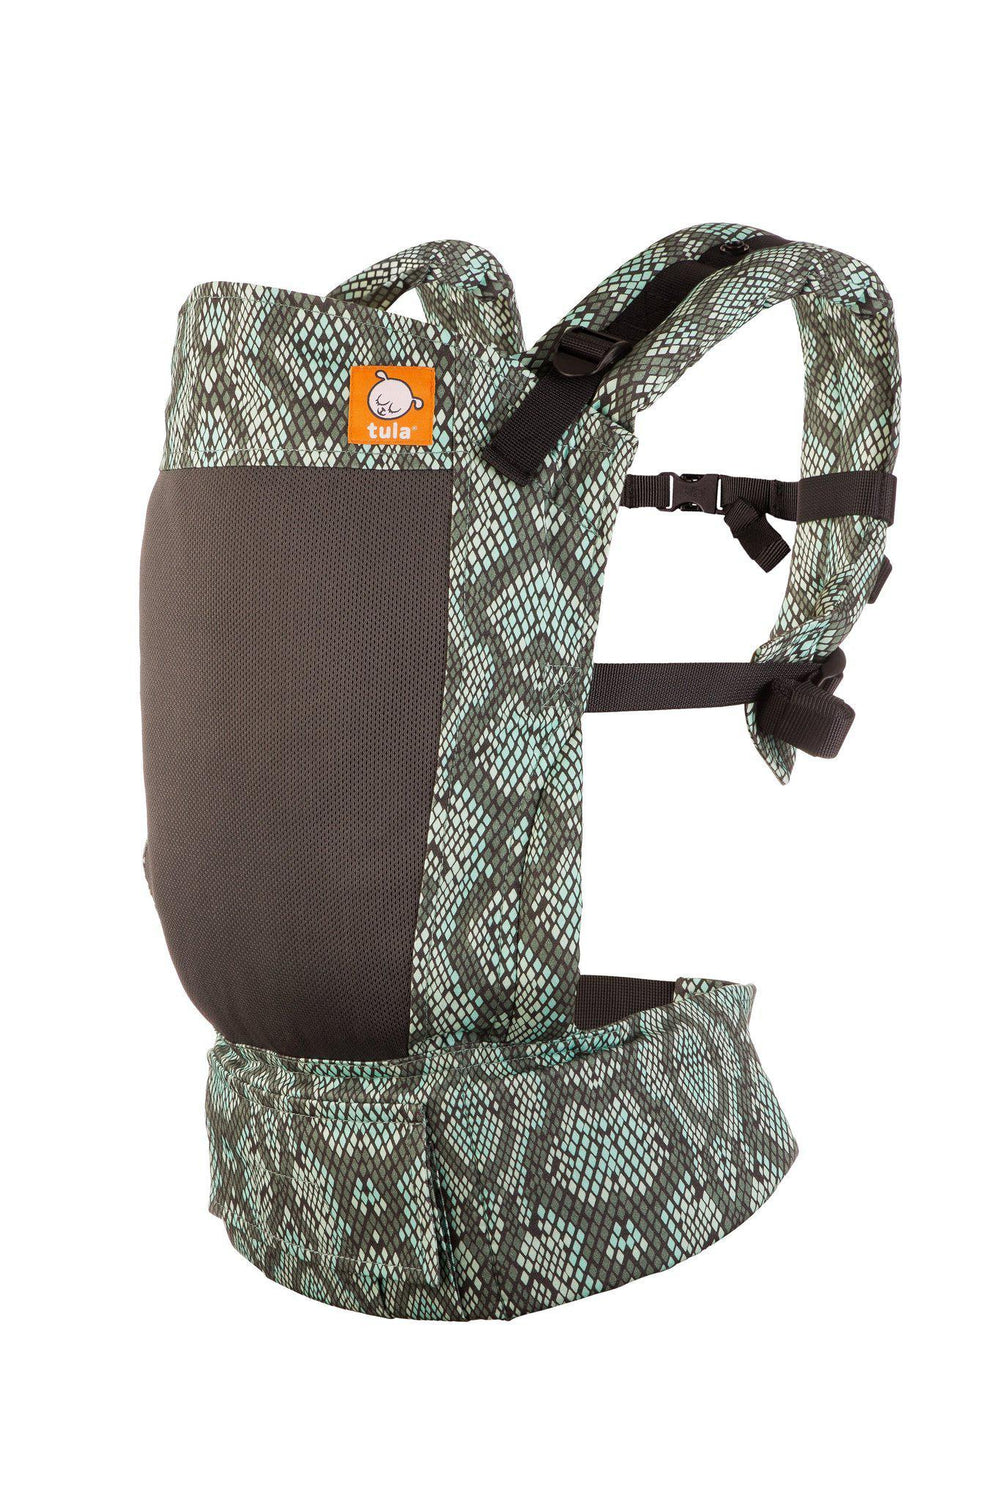 Coast Cobra Tula Toddler-Buckle Carrier-Baby Tula- Little Zen One US Babywearing baby carriers